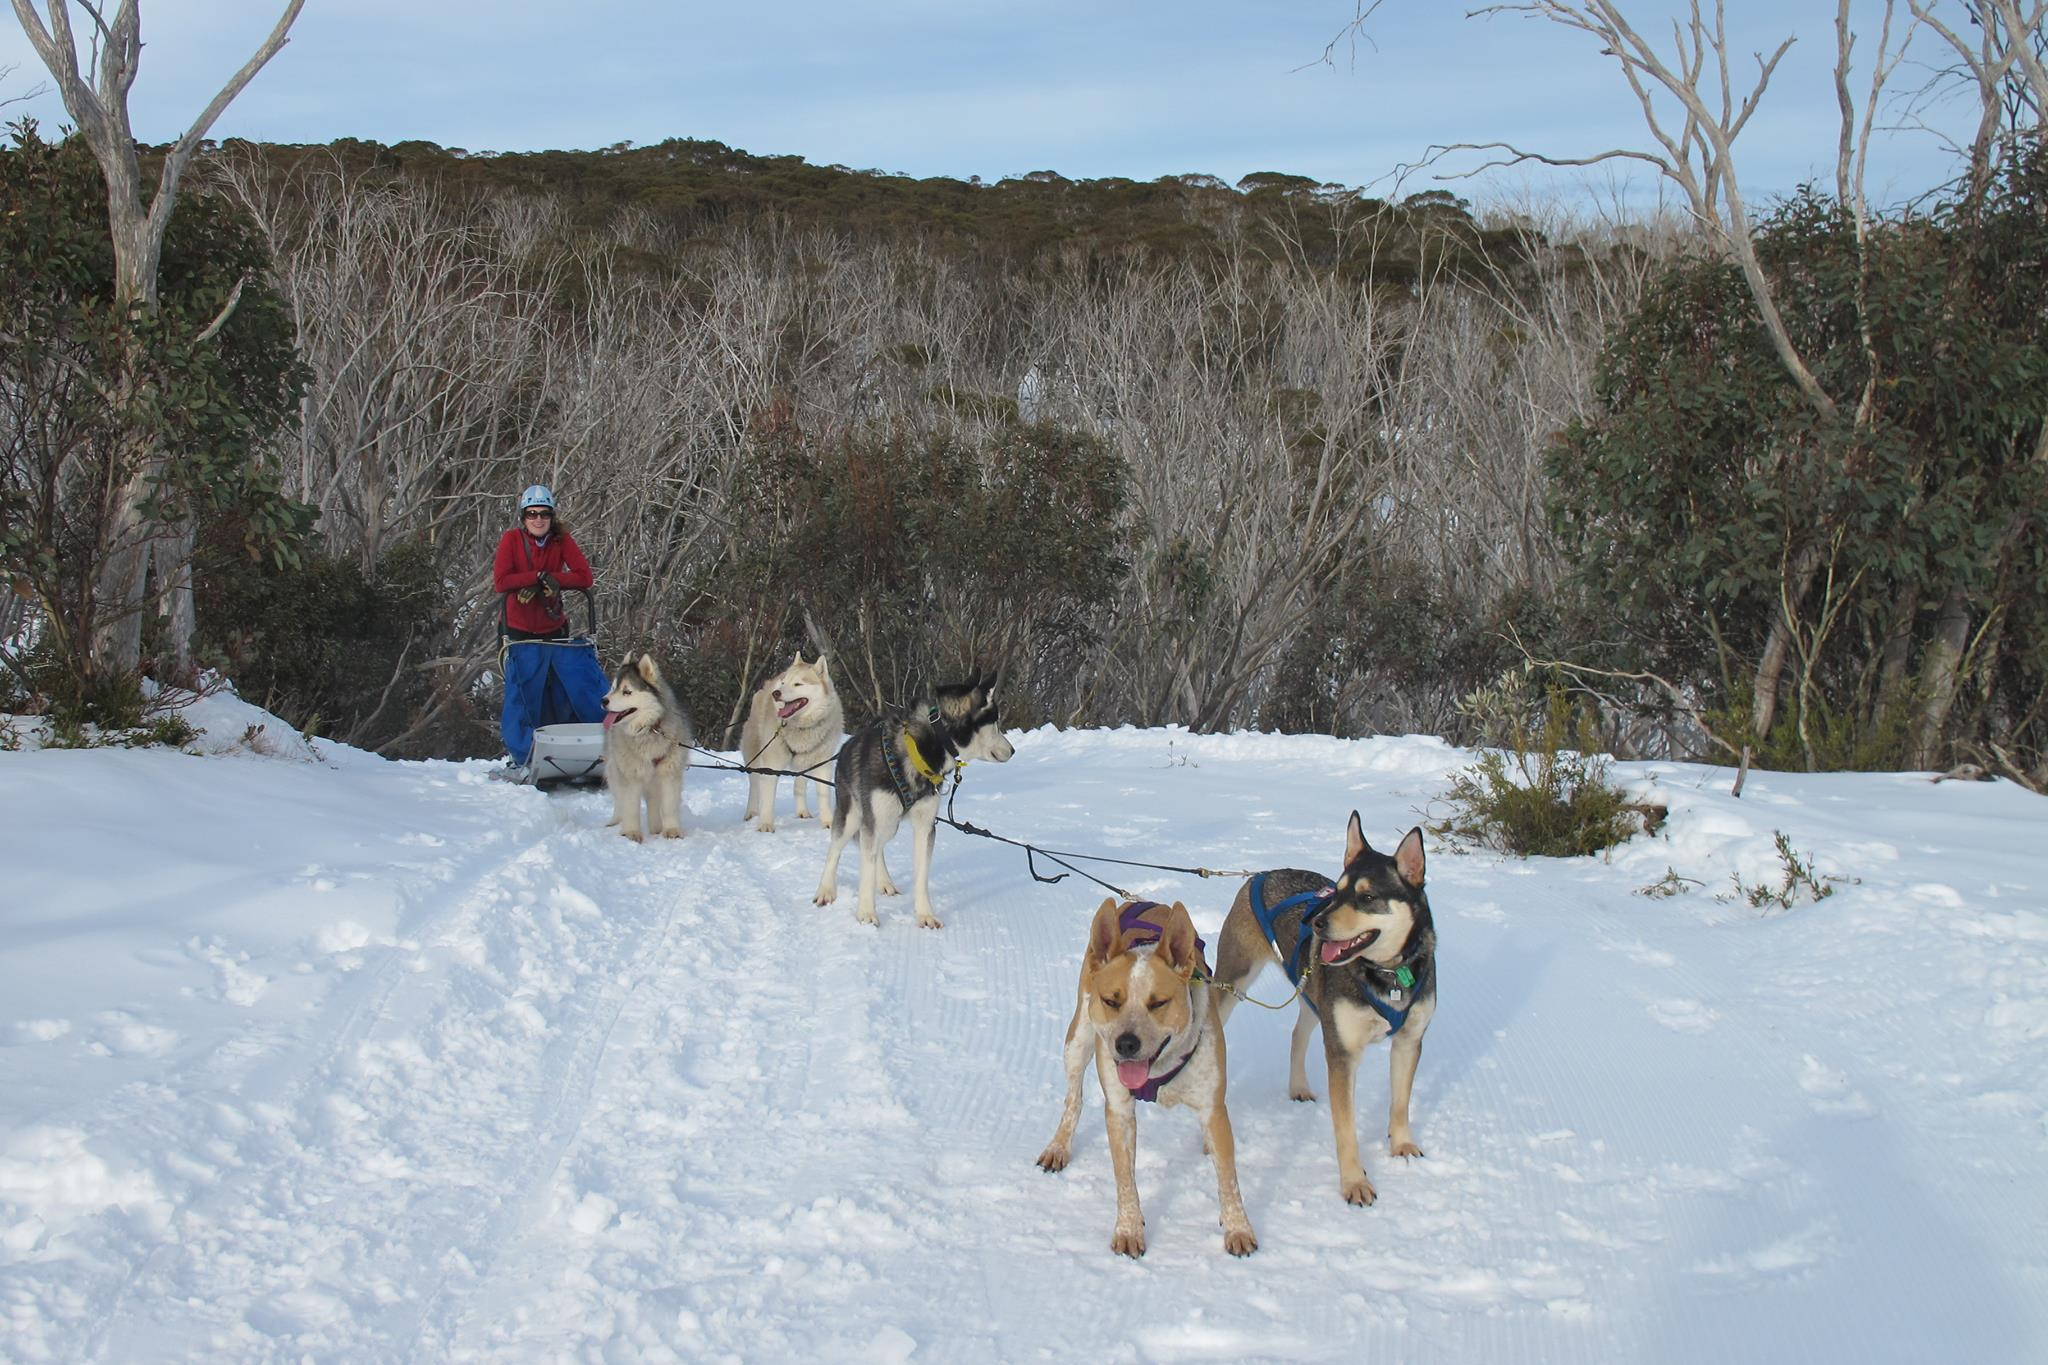 my mutts Twigs (black) and Trout (red) in lead position in the snow gums of Australia!